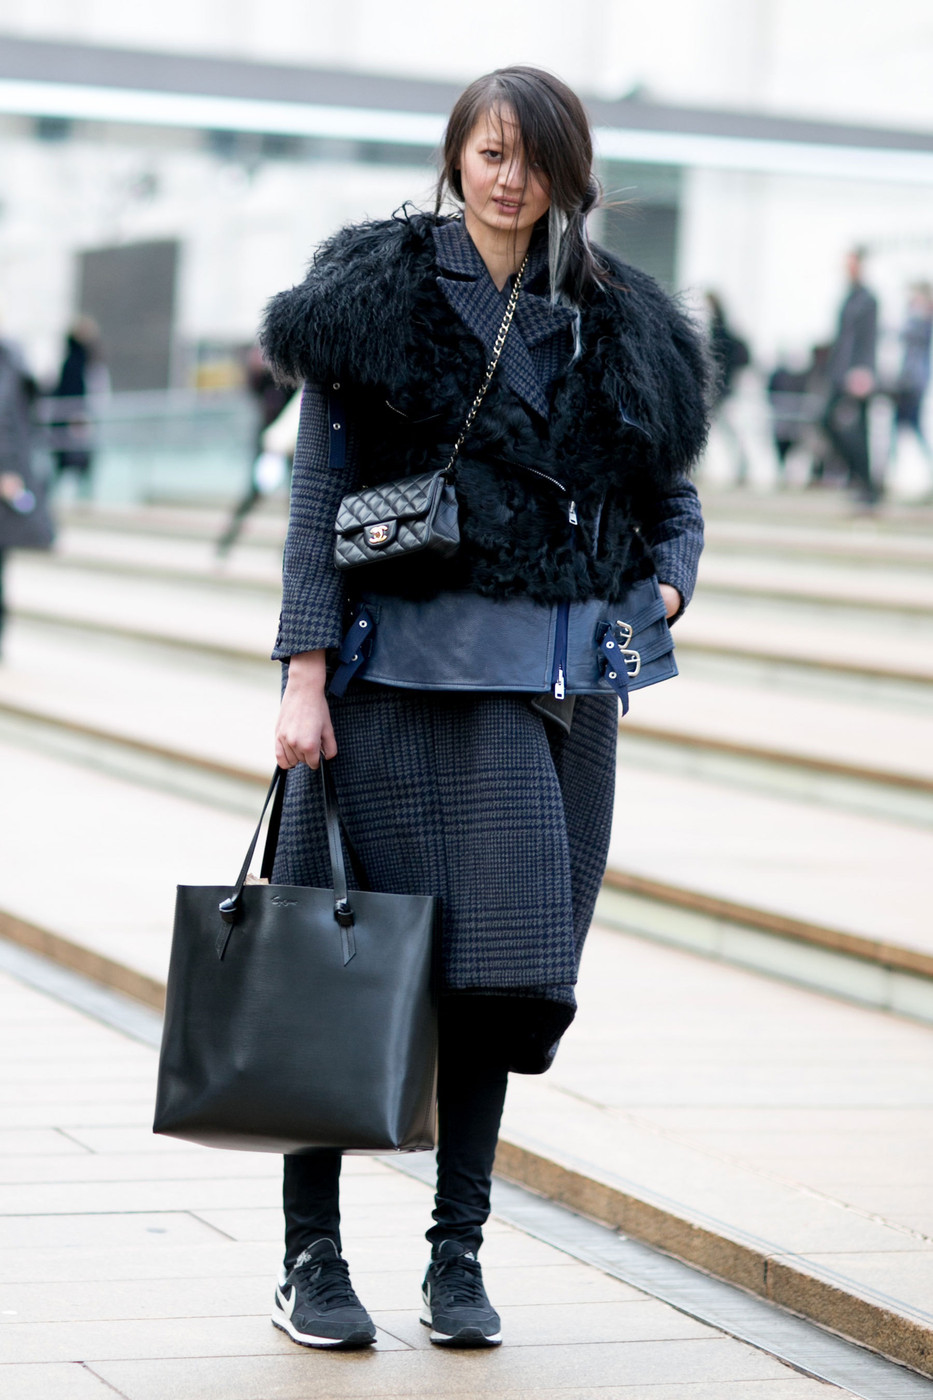 Outerwear overload best street style from new york Street style ny fashion week fall 2015